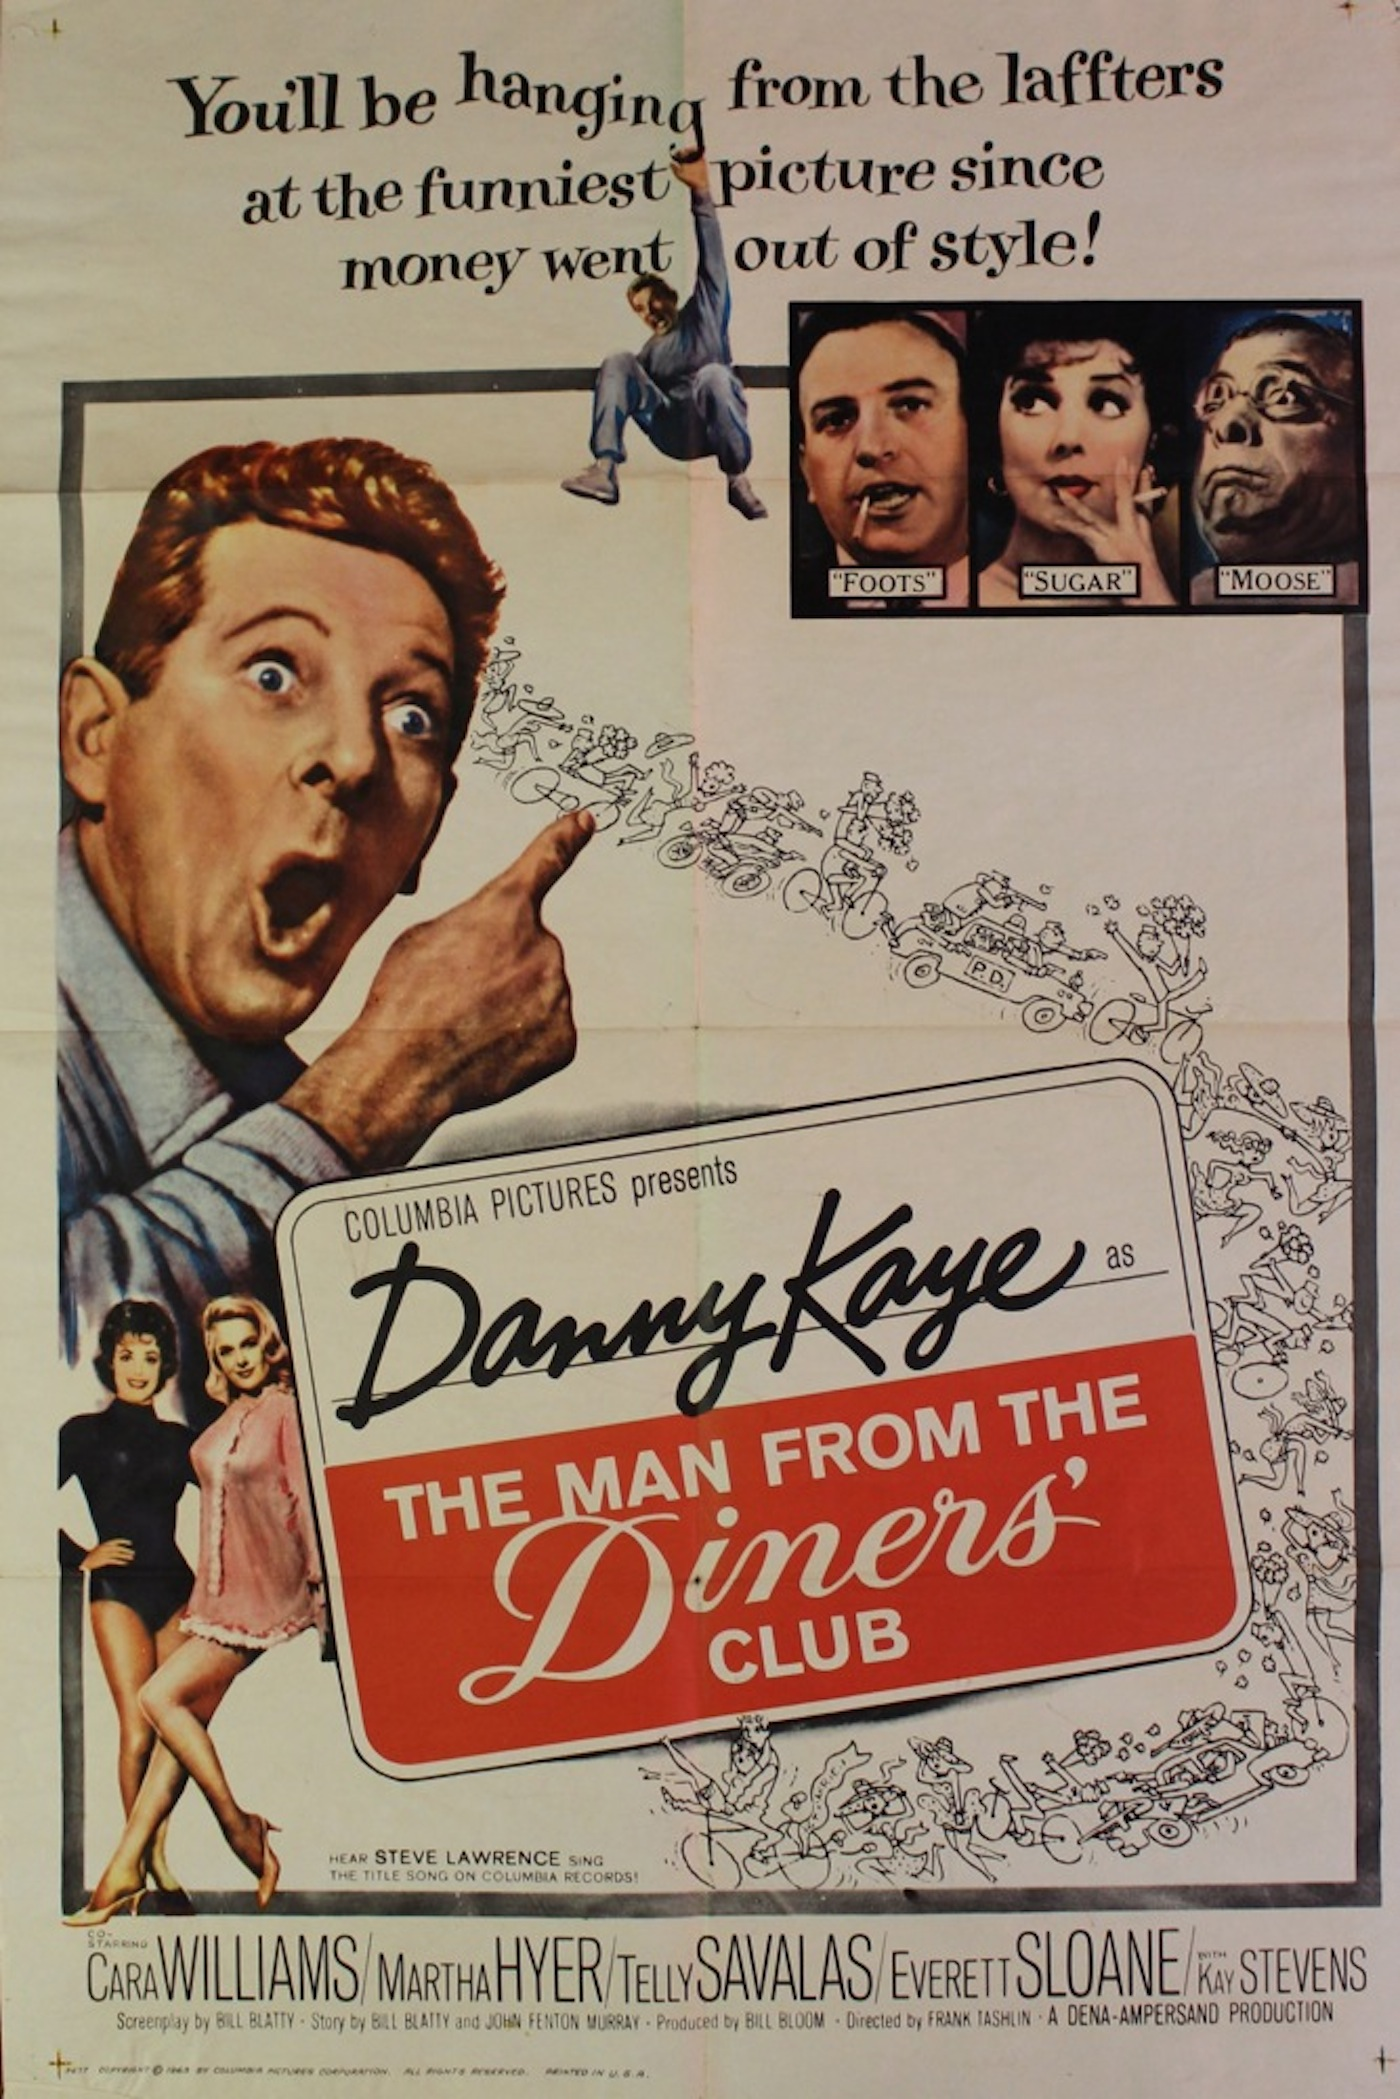 man from the diners club movie poster. Black Bedroom Furniture Sets. Home Design Ideas